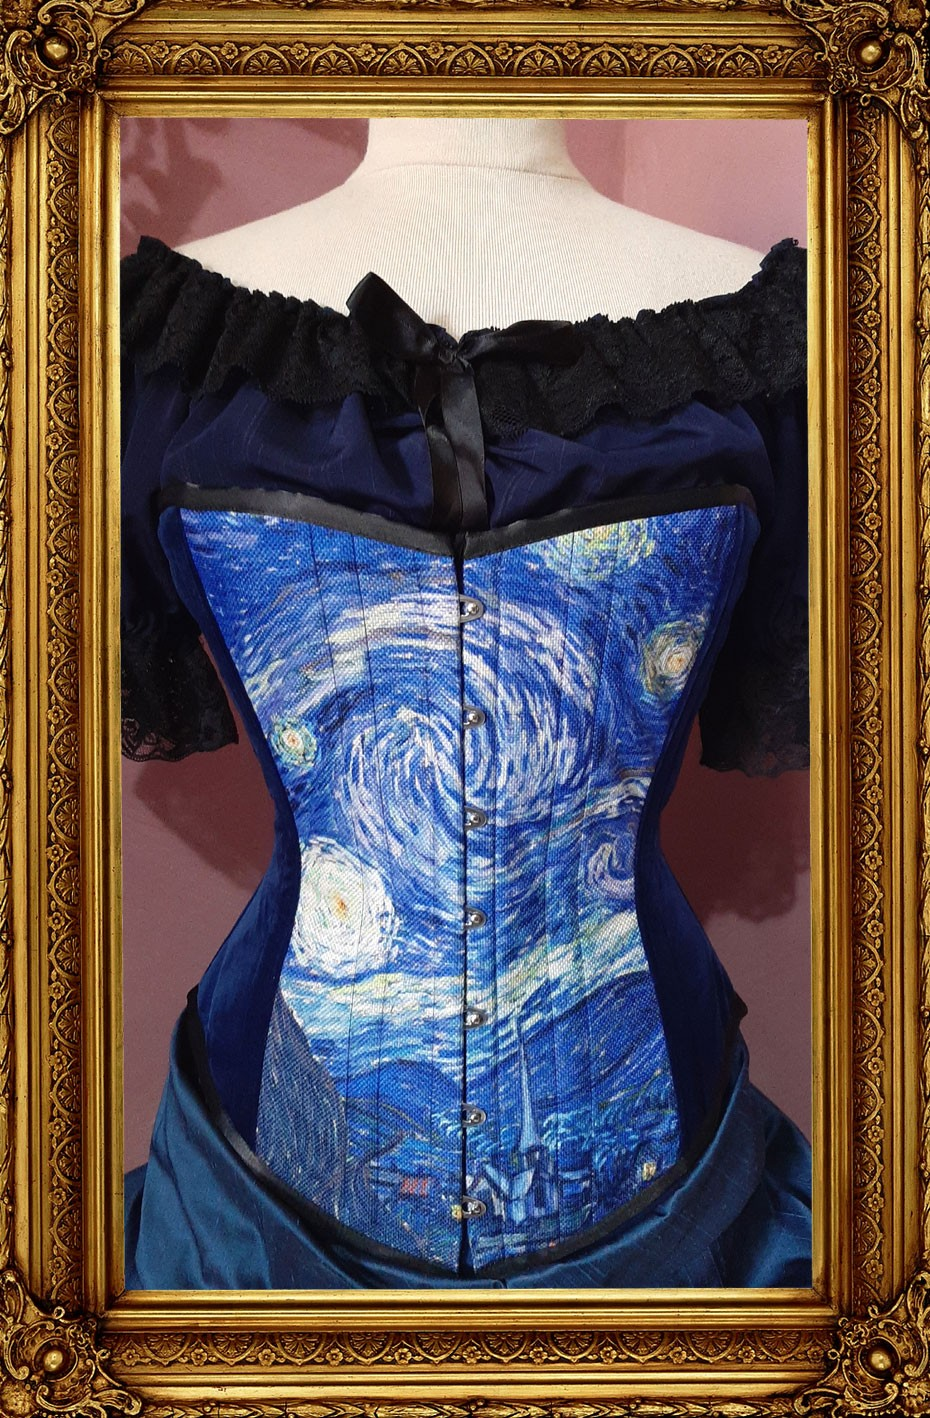 new Starry Night over bust tight lacing steel boned corset from Gallery Serpentine